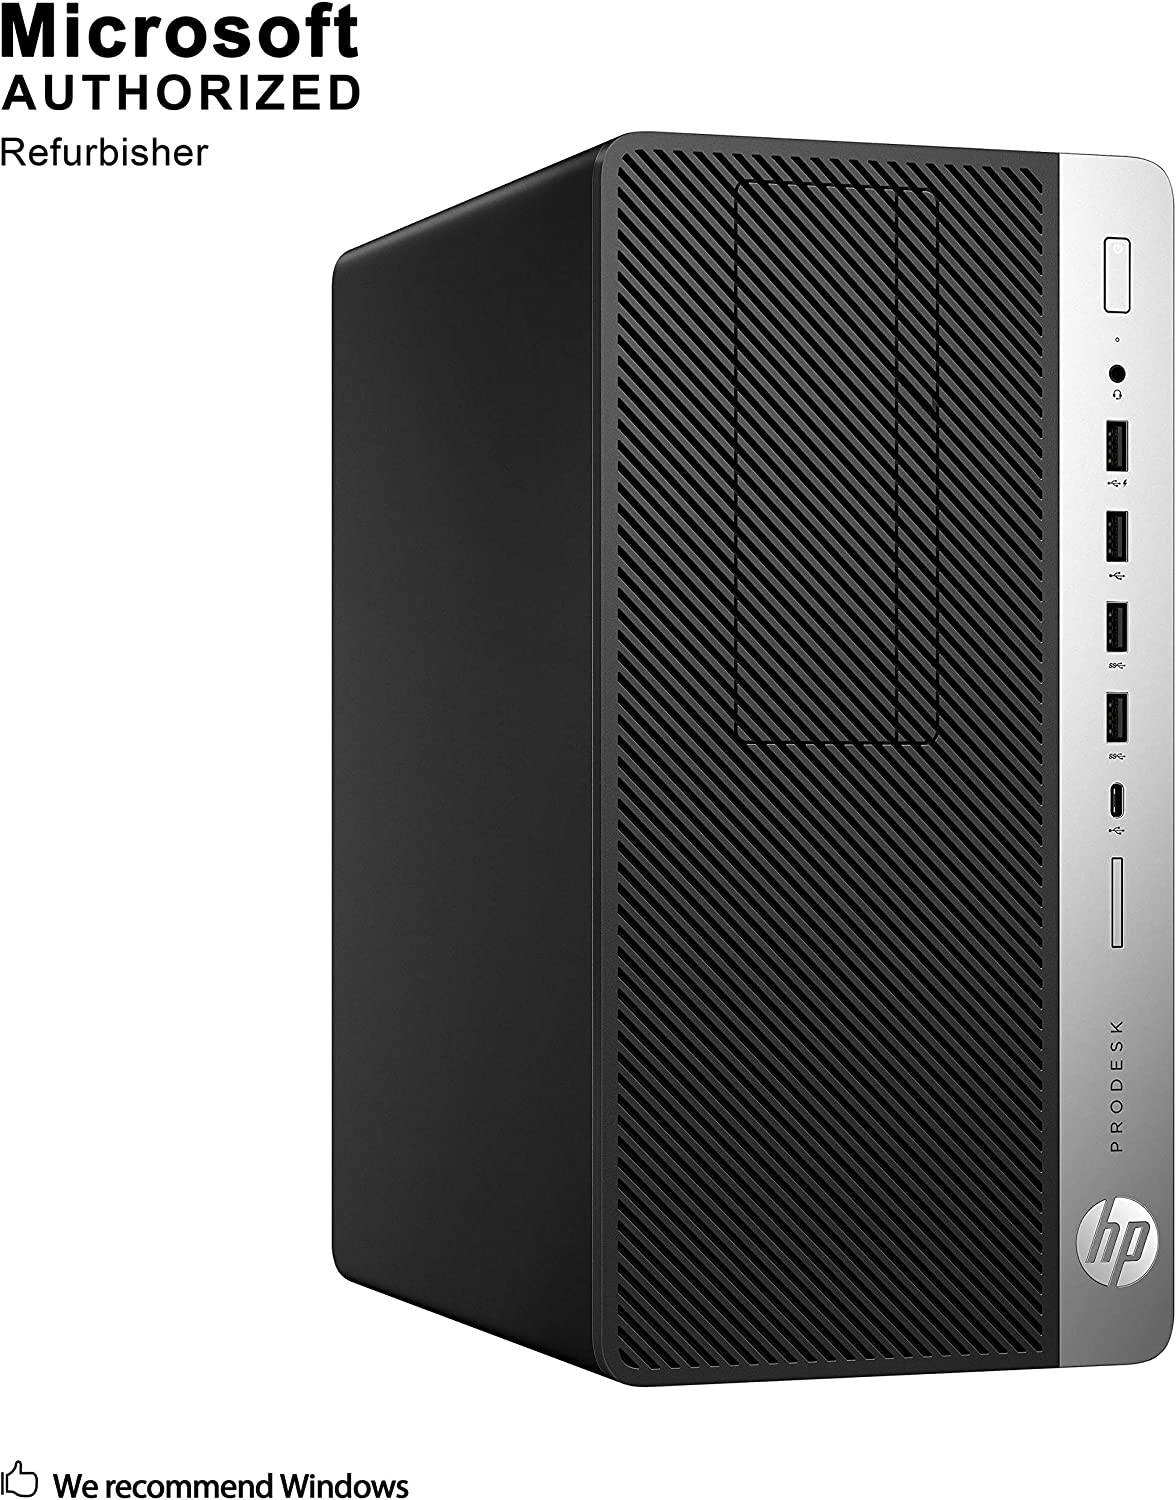 HP ProDesk 600 G3 Premium Micro Desktop Business Tower PC 2019 Flagship, Intel Core i5-7500 Quad-Core, 16GB RAM, 1TB HDD, DVDRW, USB-C, Display Port, No WiFi, Win 10 Pro W/Masdrow Accessories